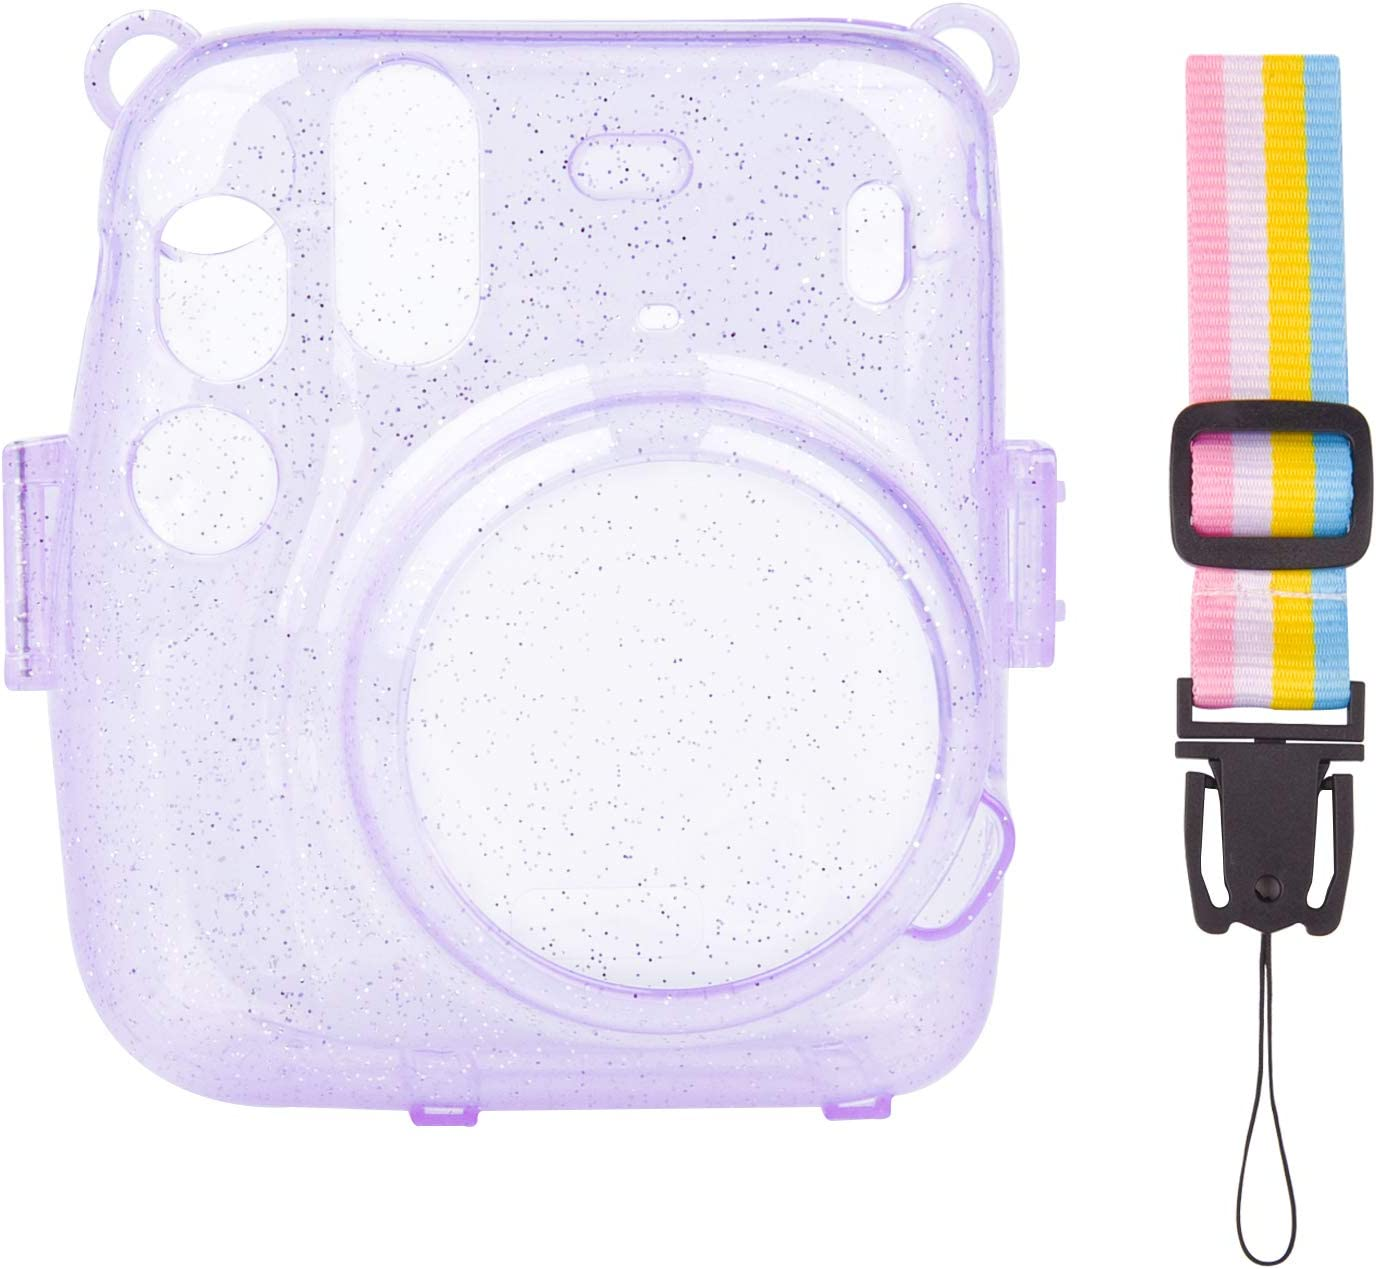 SUNMNS Clear Crystal Protective Case Max 74% OFF In Fujifilm Super special price with Compatible